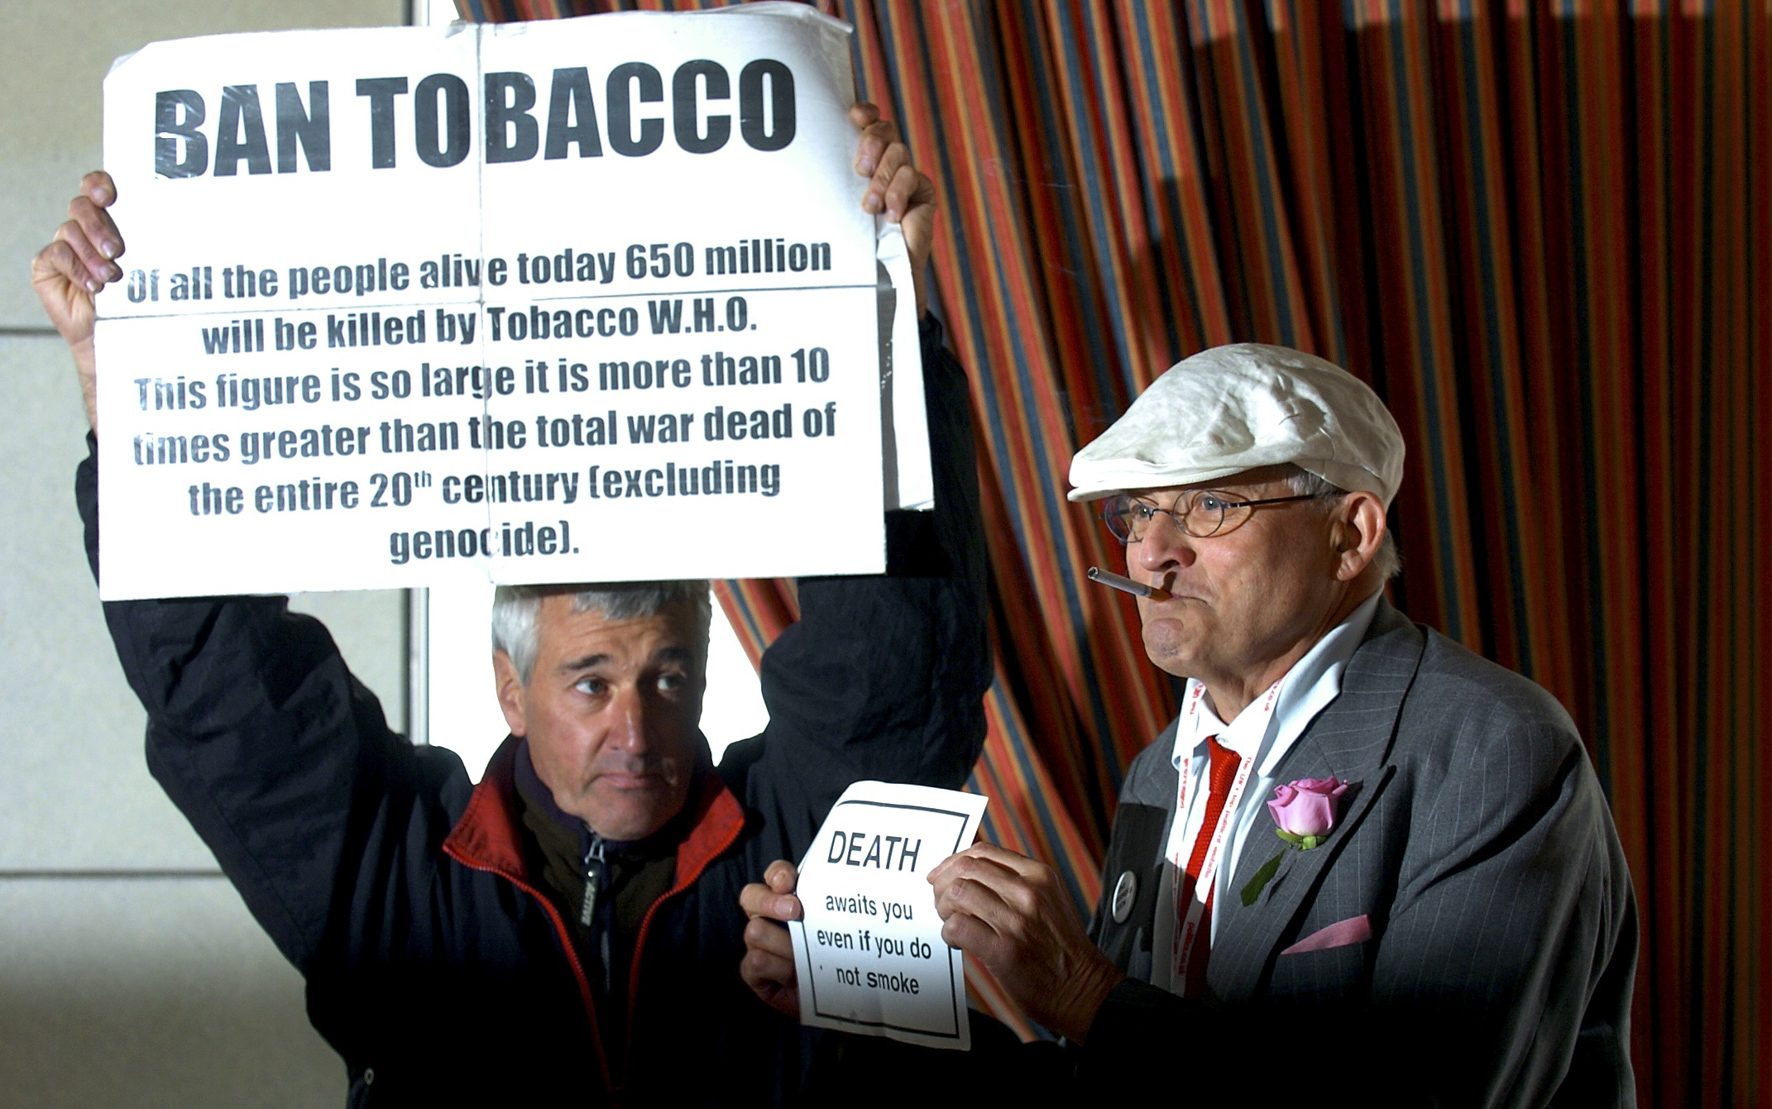 Artist David Hockney has his pro smoking event halted by a protestor - News